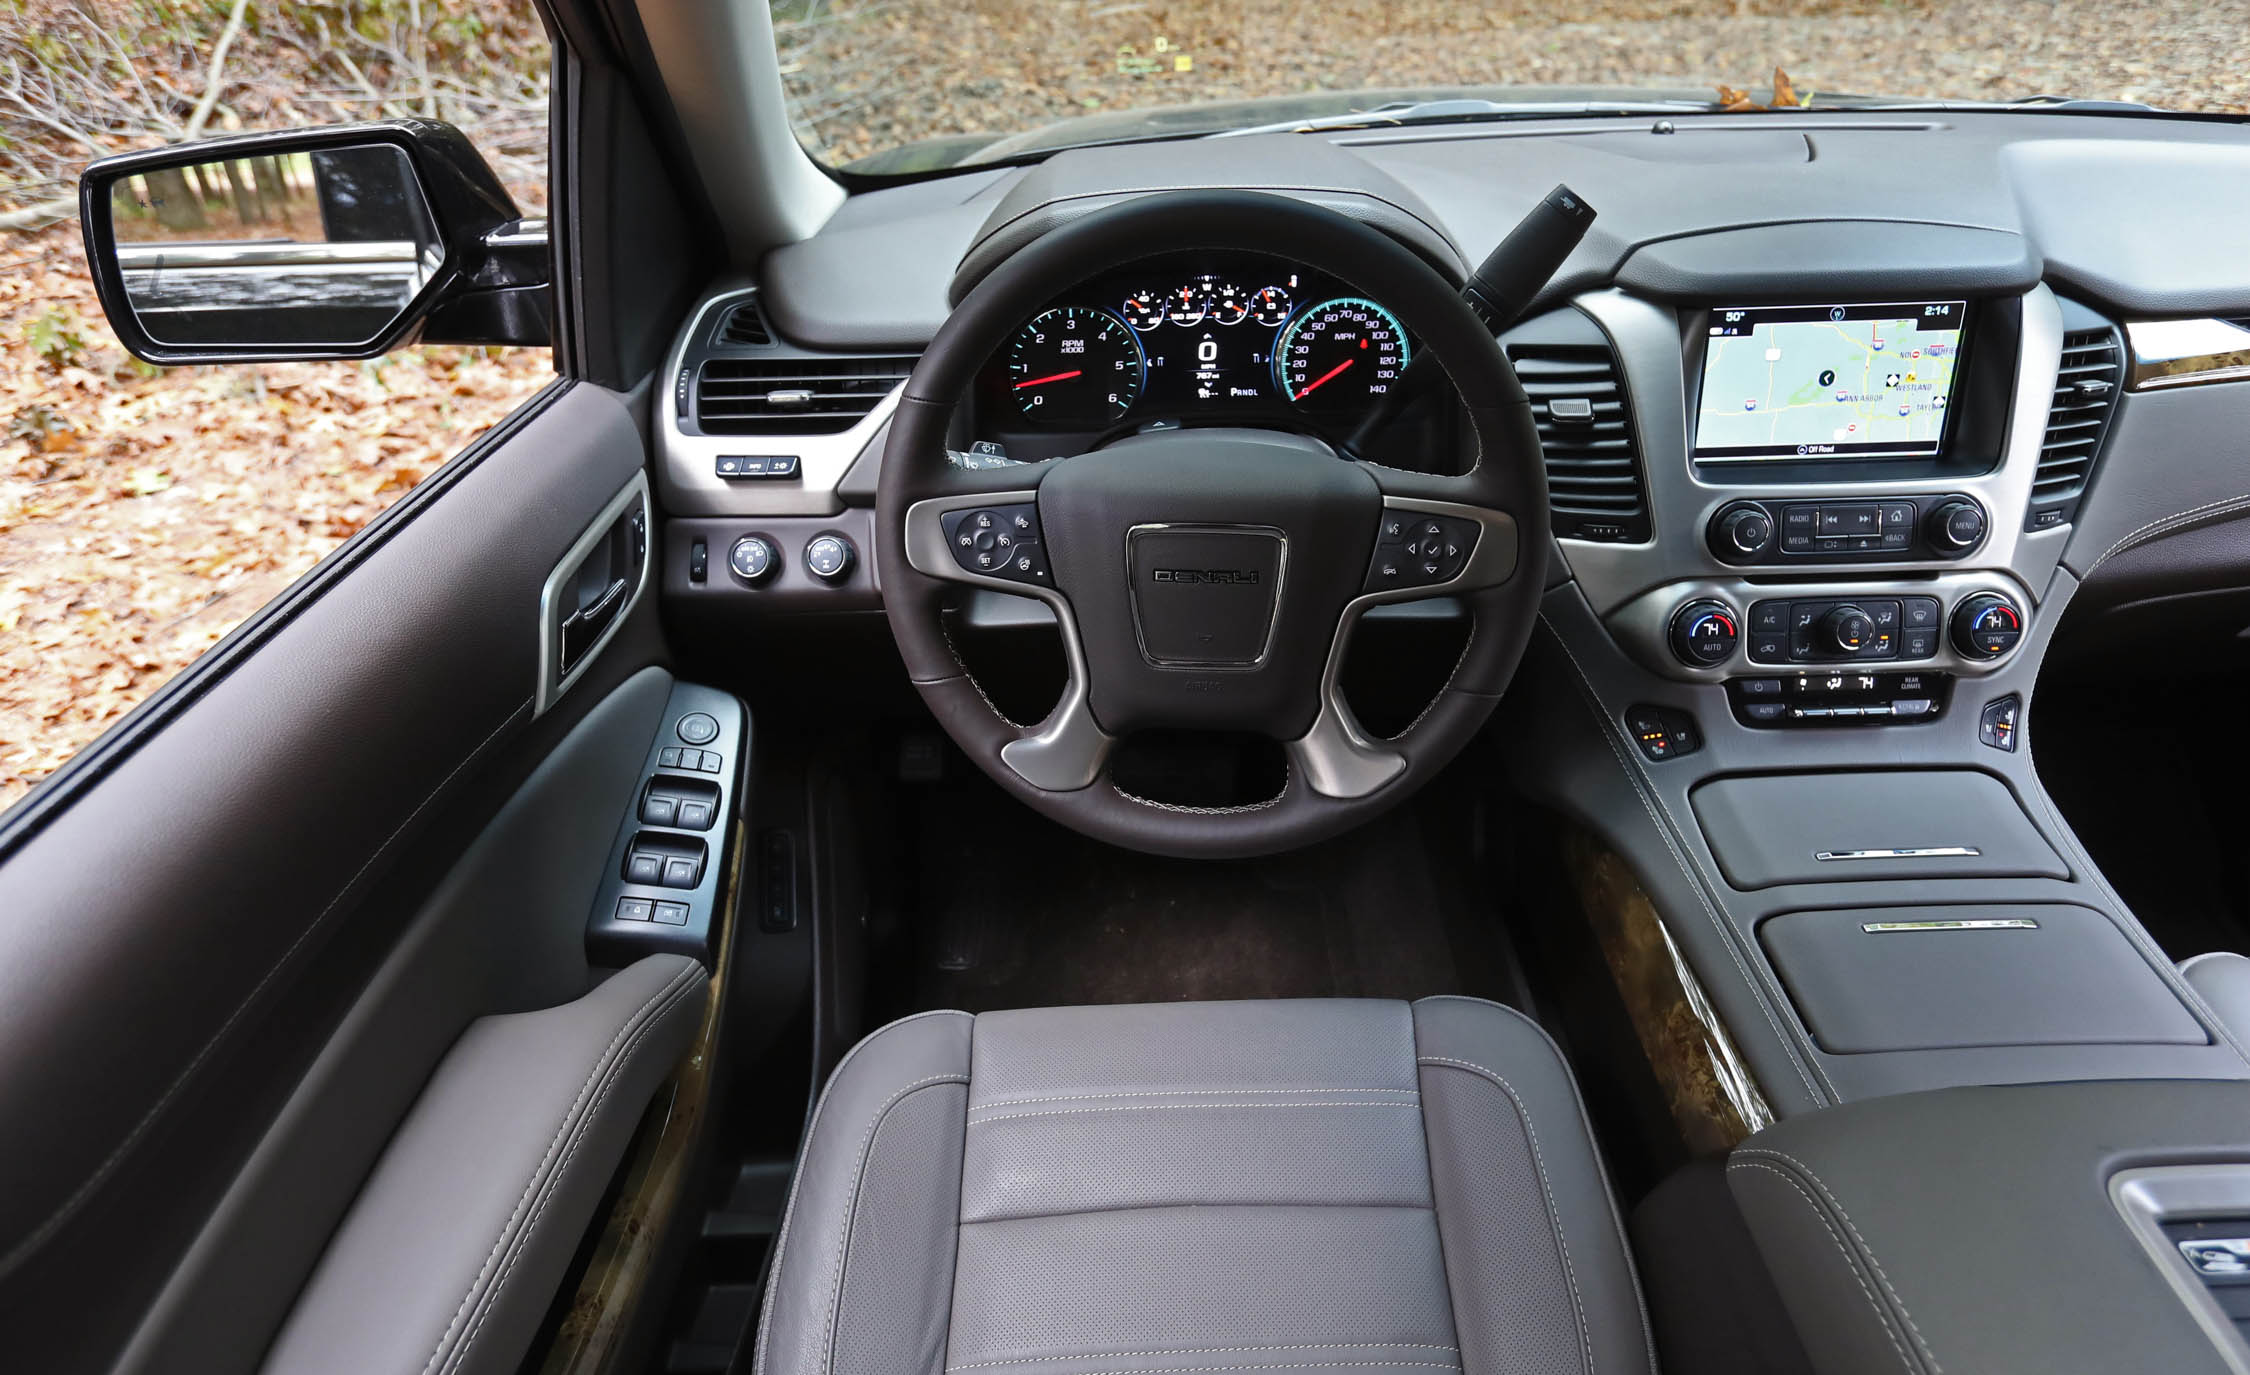 2017 Gmc Yukon Xl Denali Interior Cockpit And Dash (Photo 15 of 26)